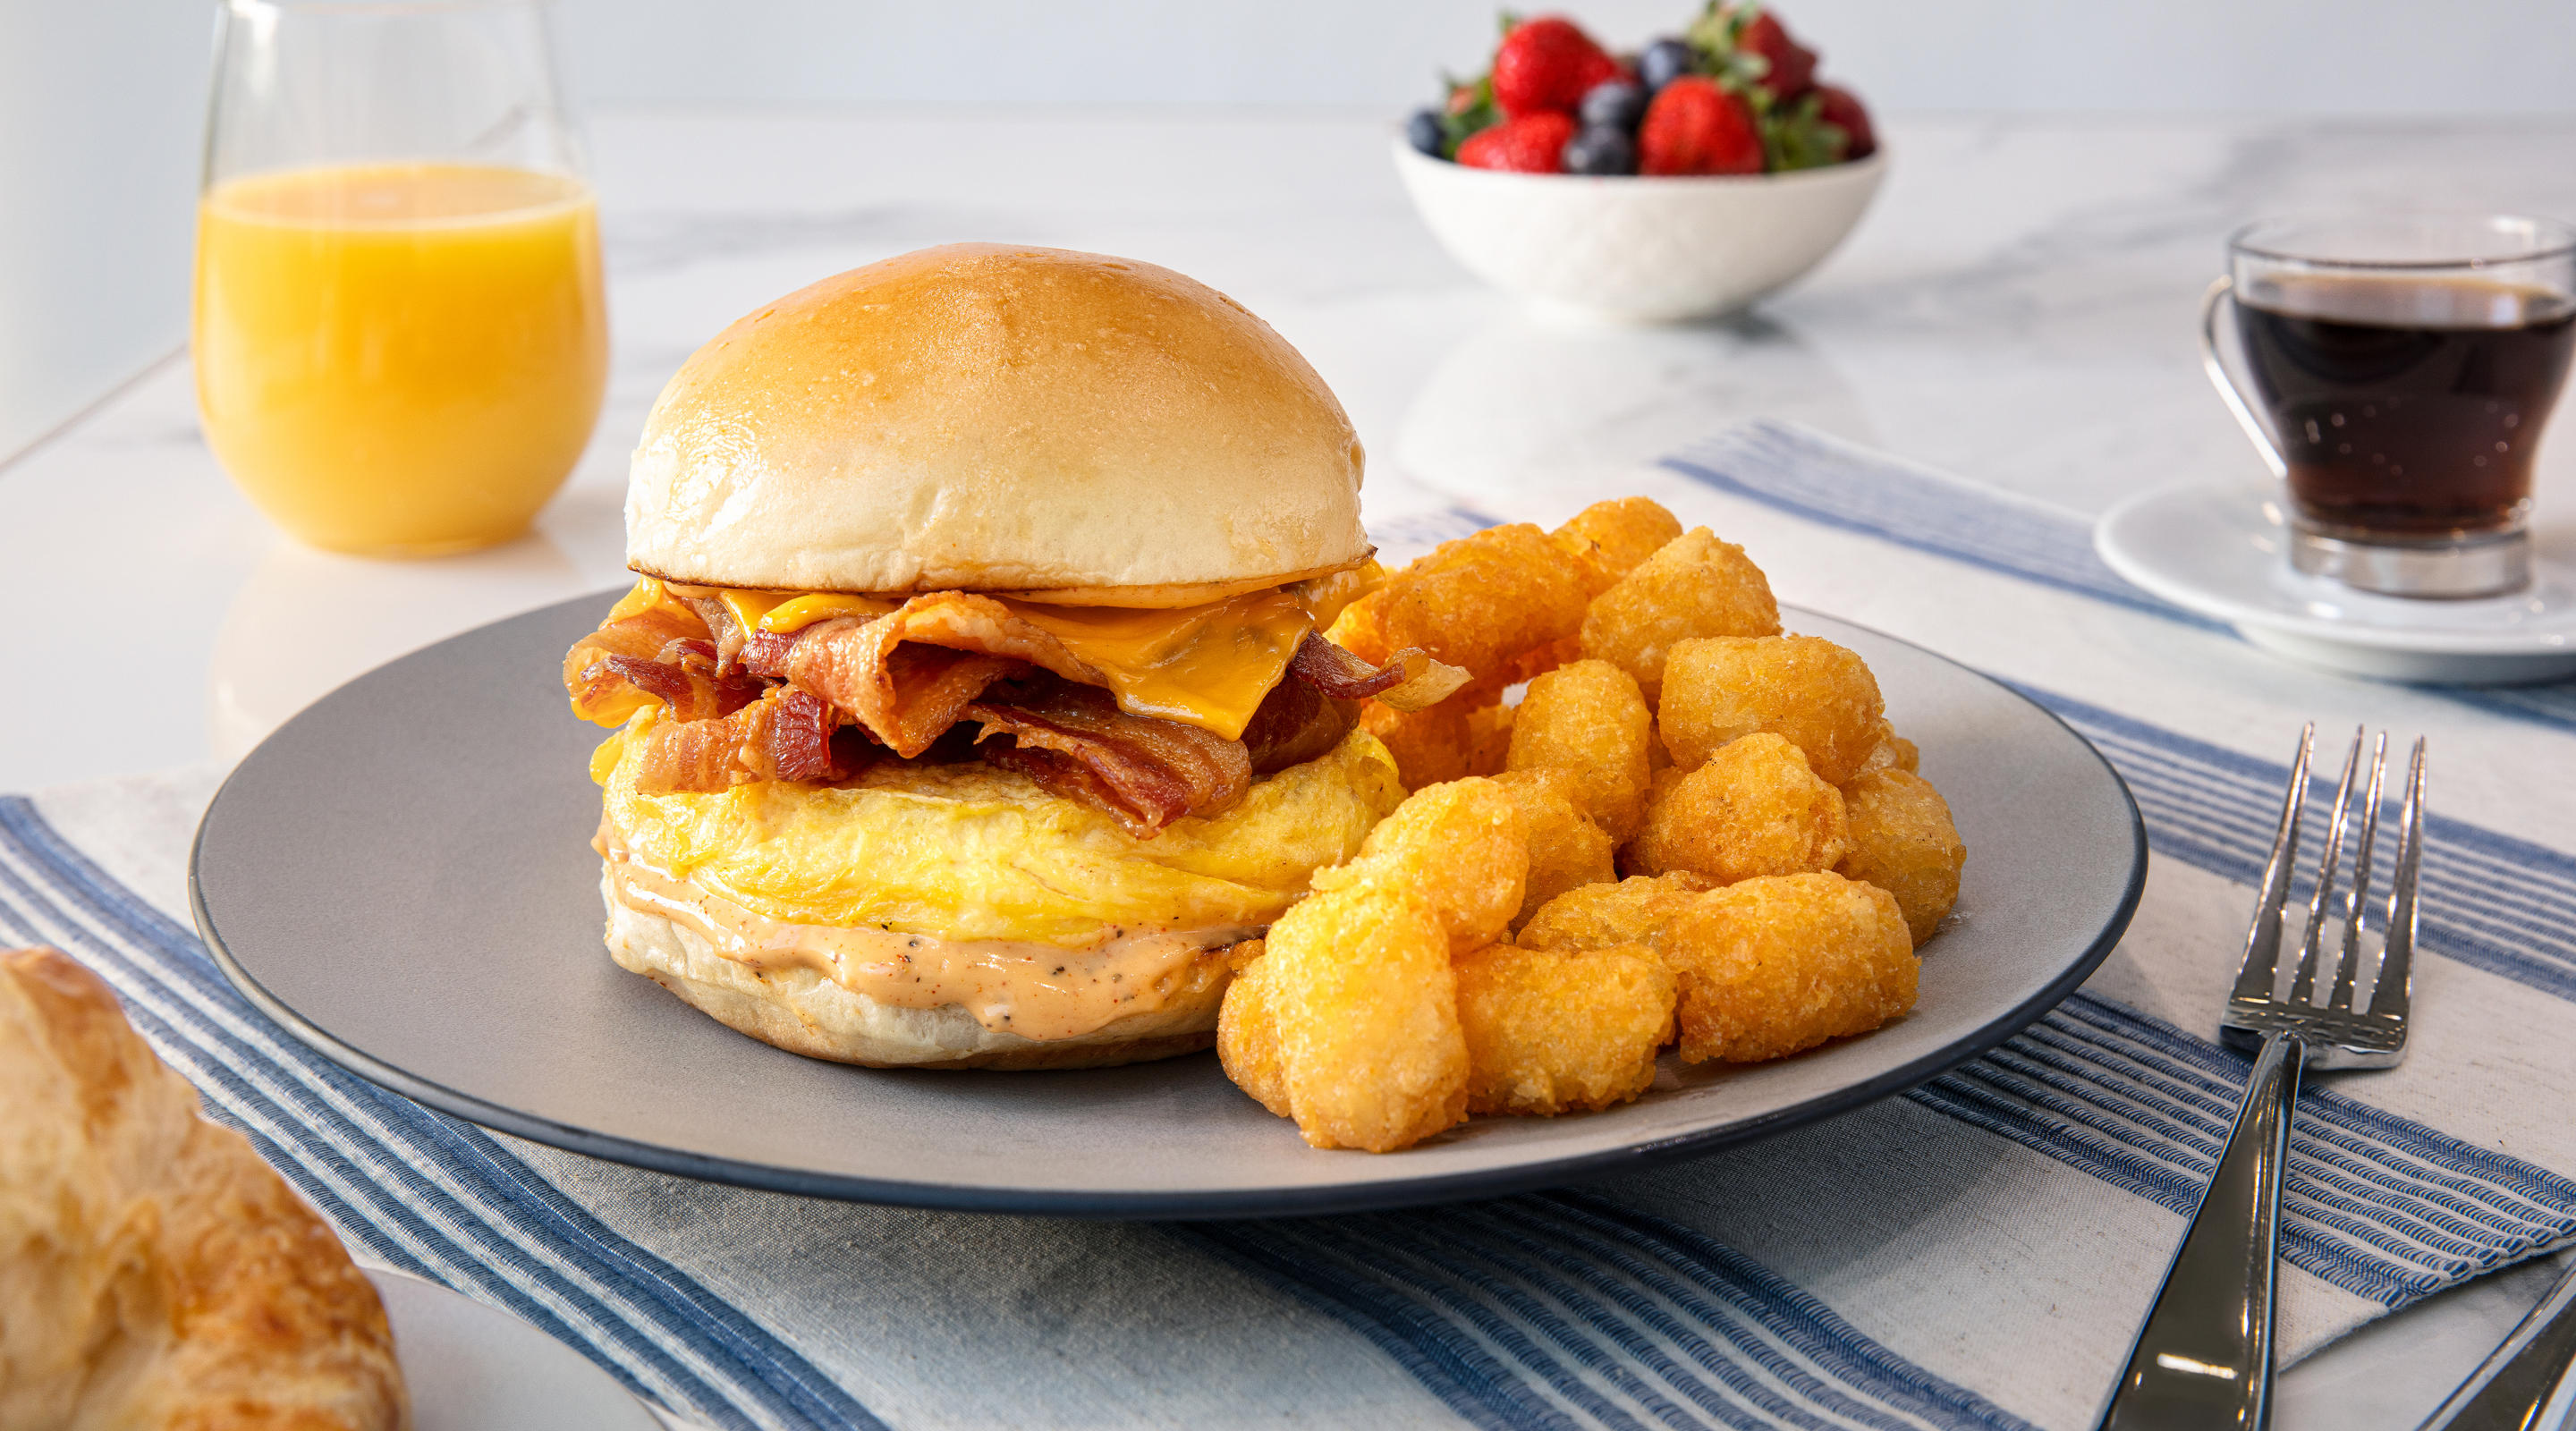 Bacon, egg and cheese breakfast sandwich with tater tots.